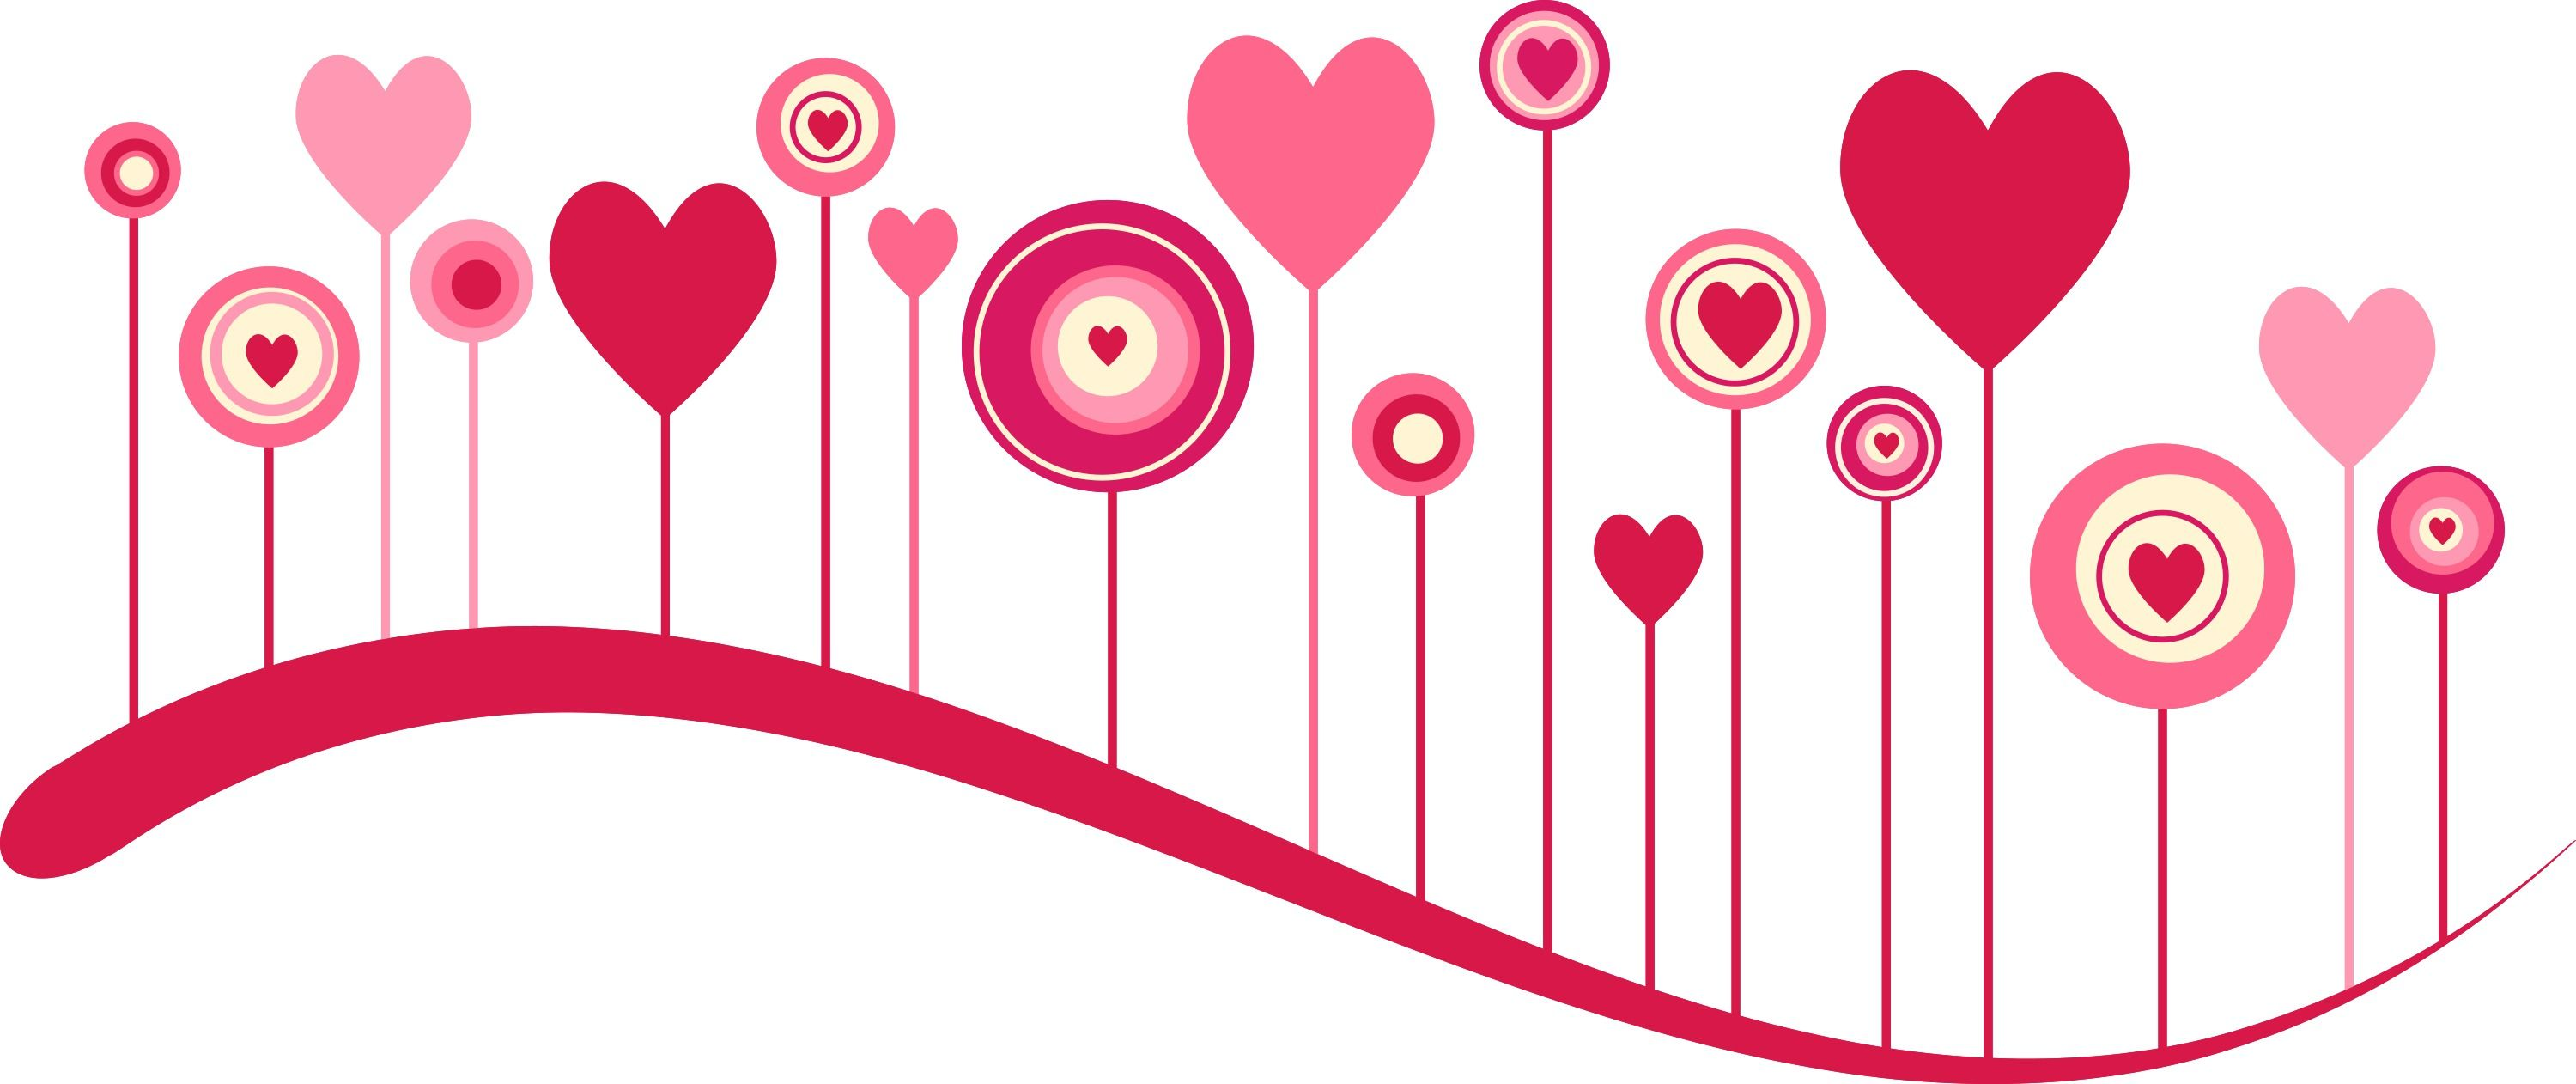 Images For > Pink Heart Border.